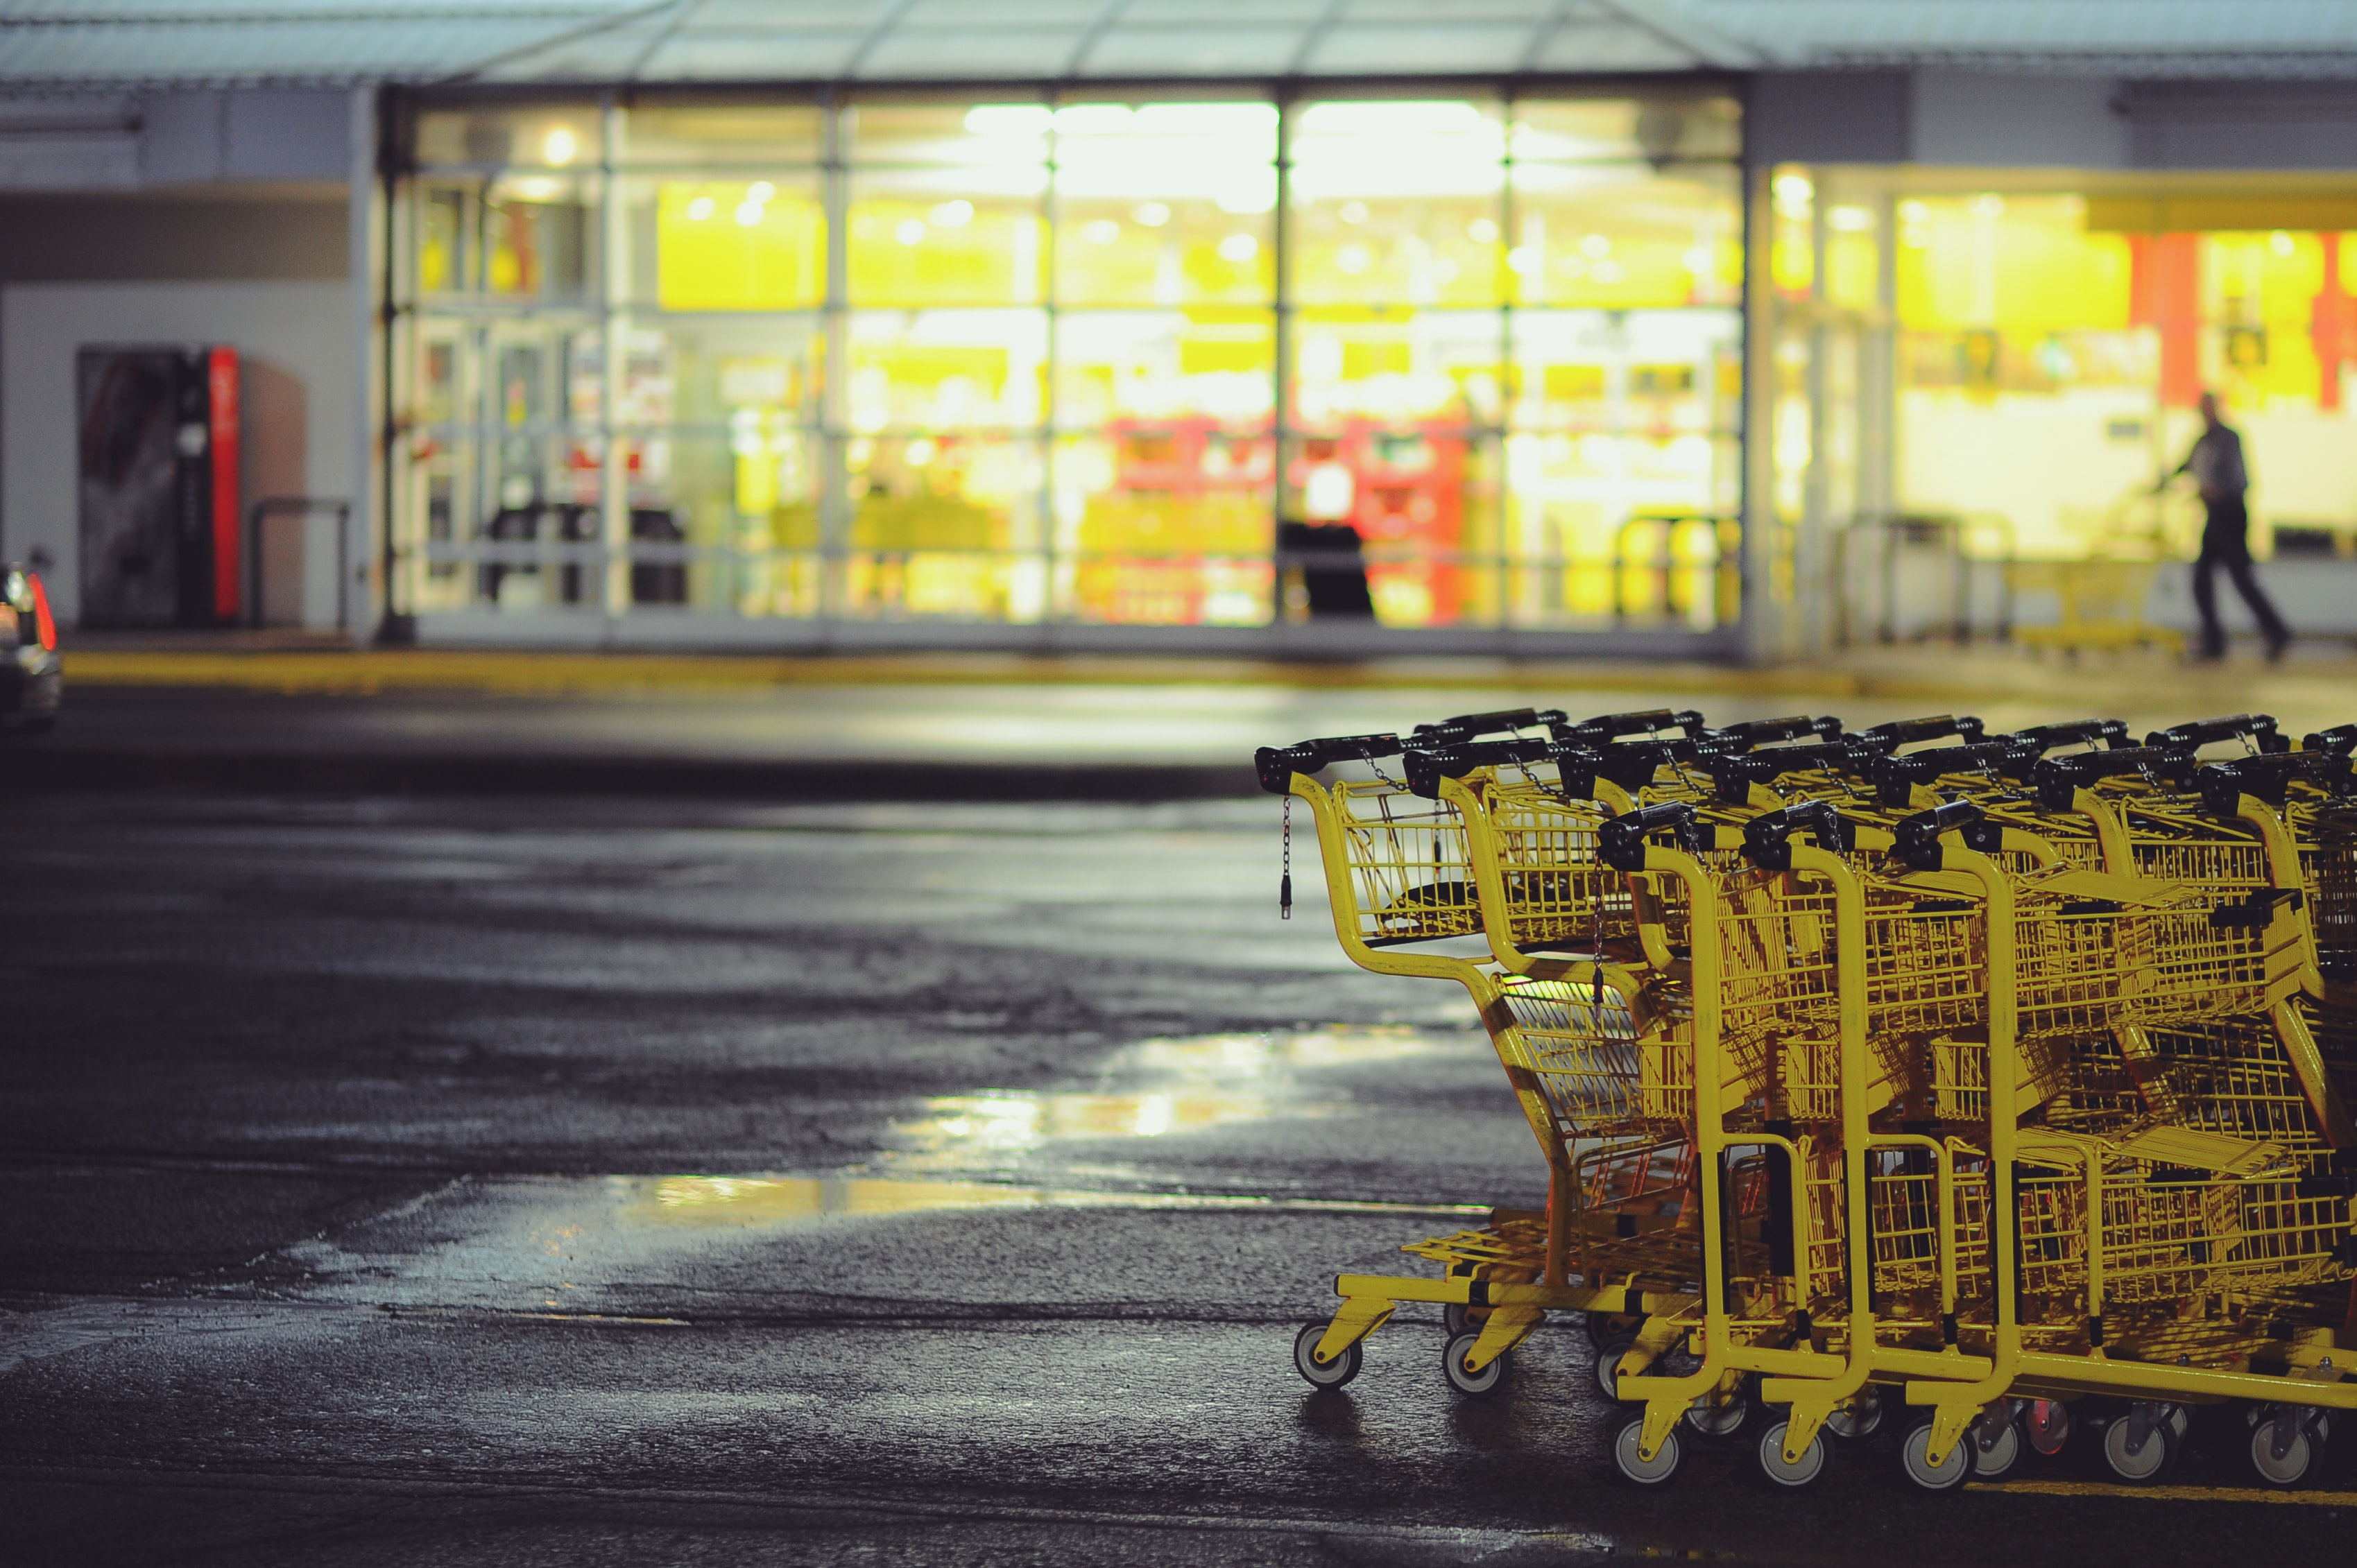 Yellow shopping carts stacked together on the wet parking lot in front of the supermarket at night